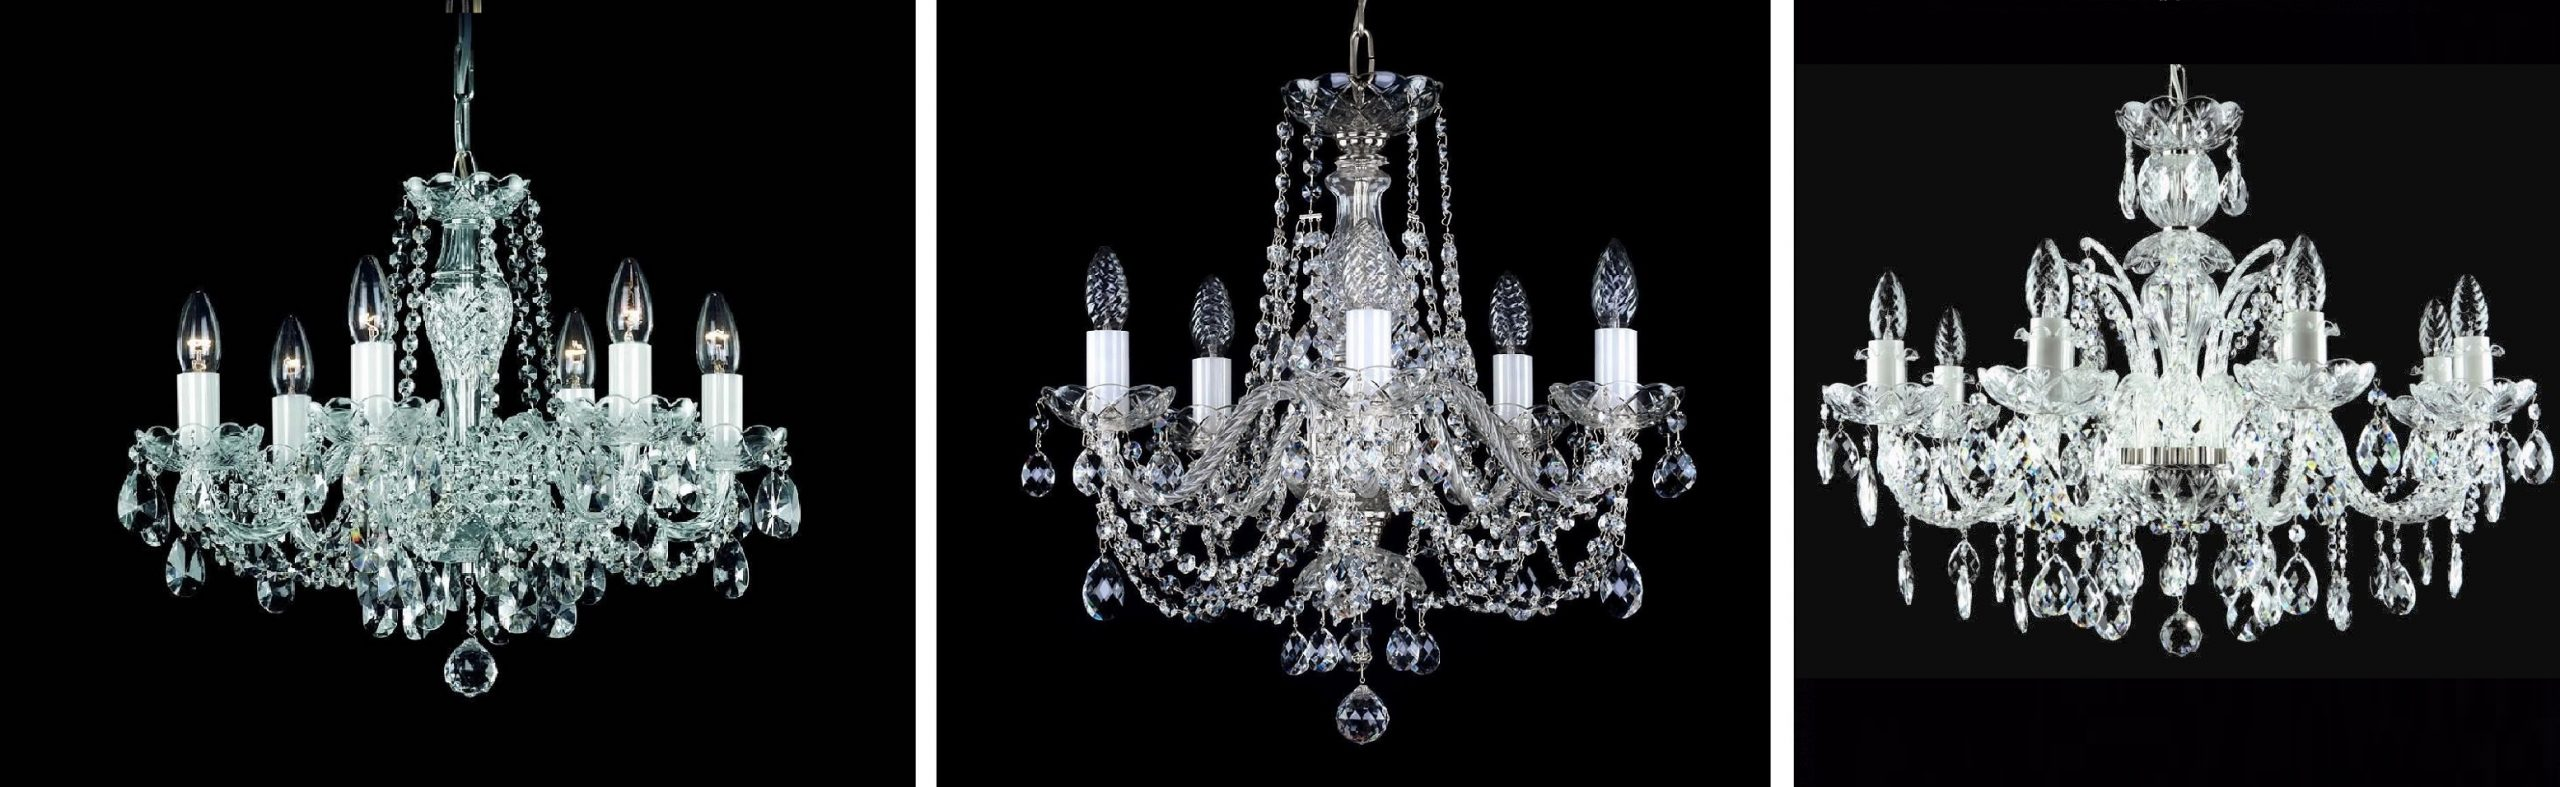 Crystal Chandelier rental and chandelier hire in France